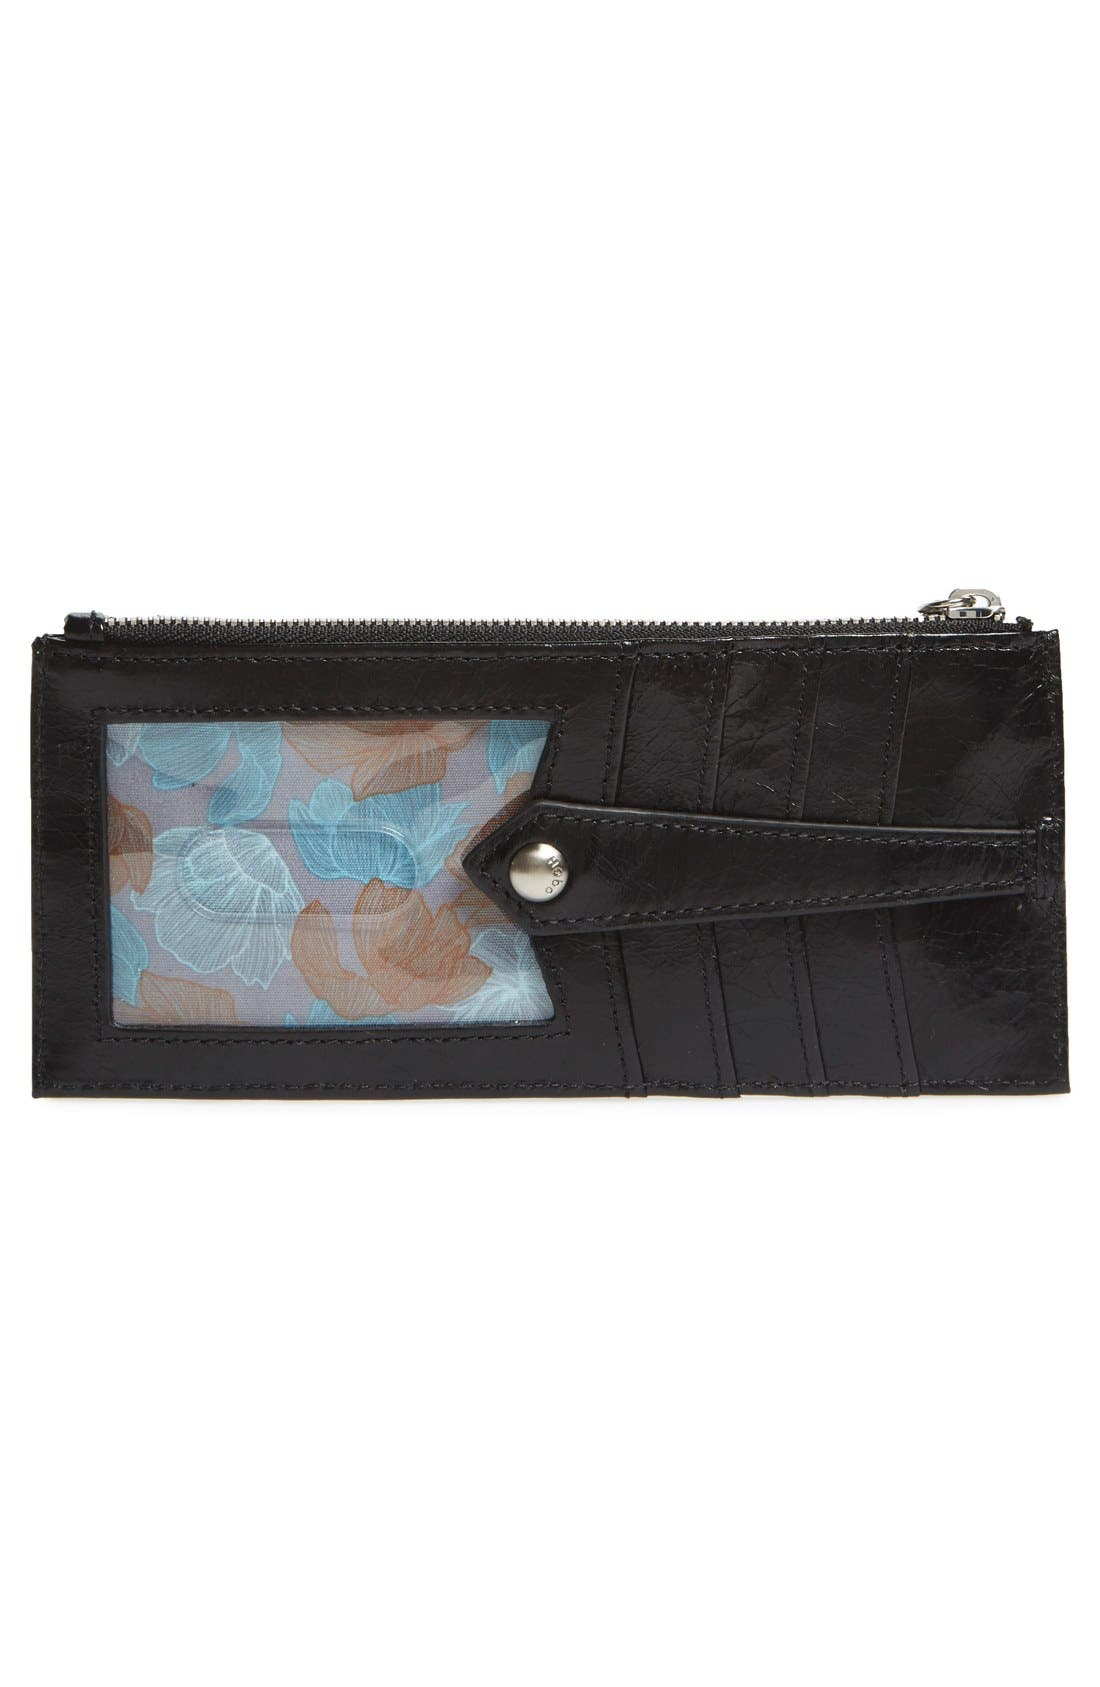 Card Cases Wallets & Card Cases for Women | Nordstrom